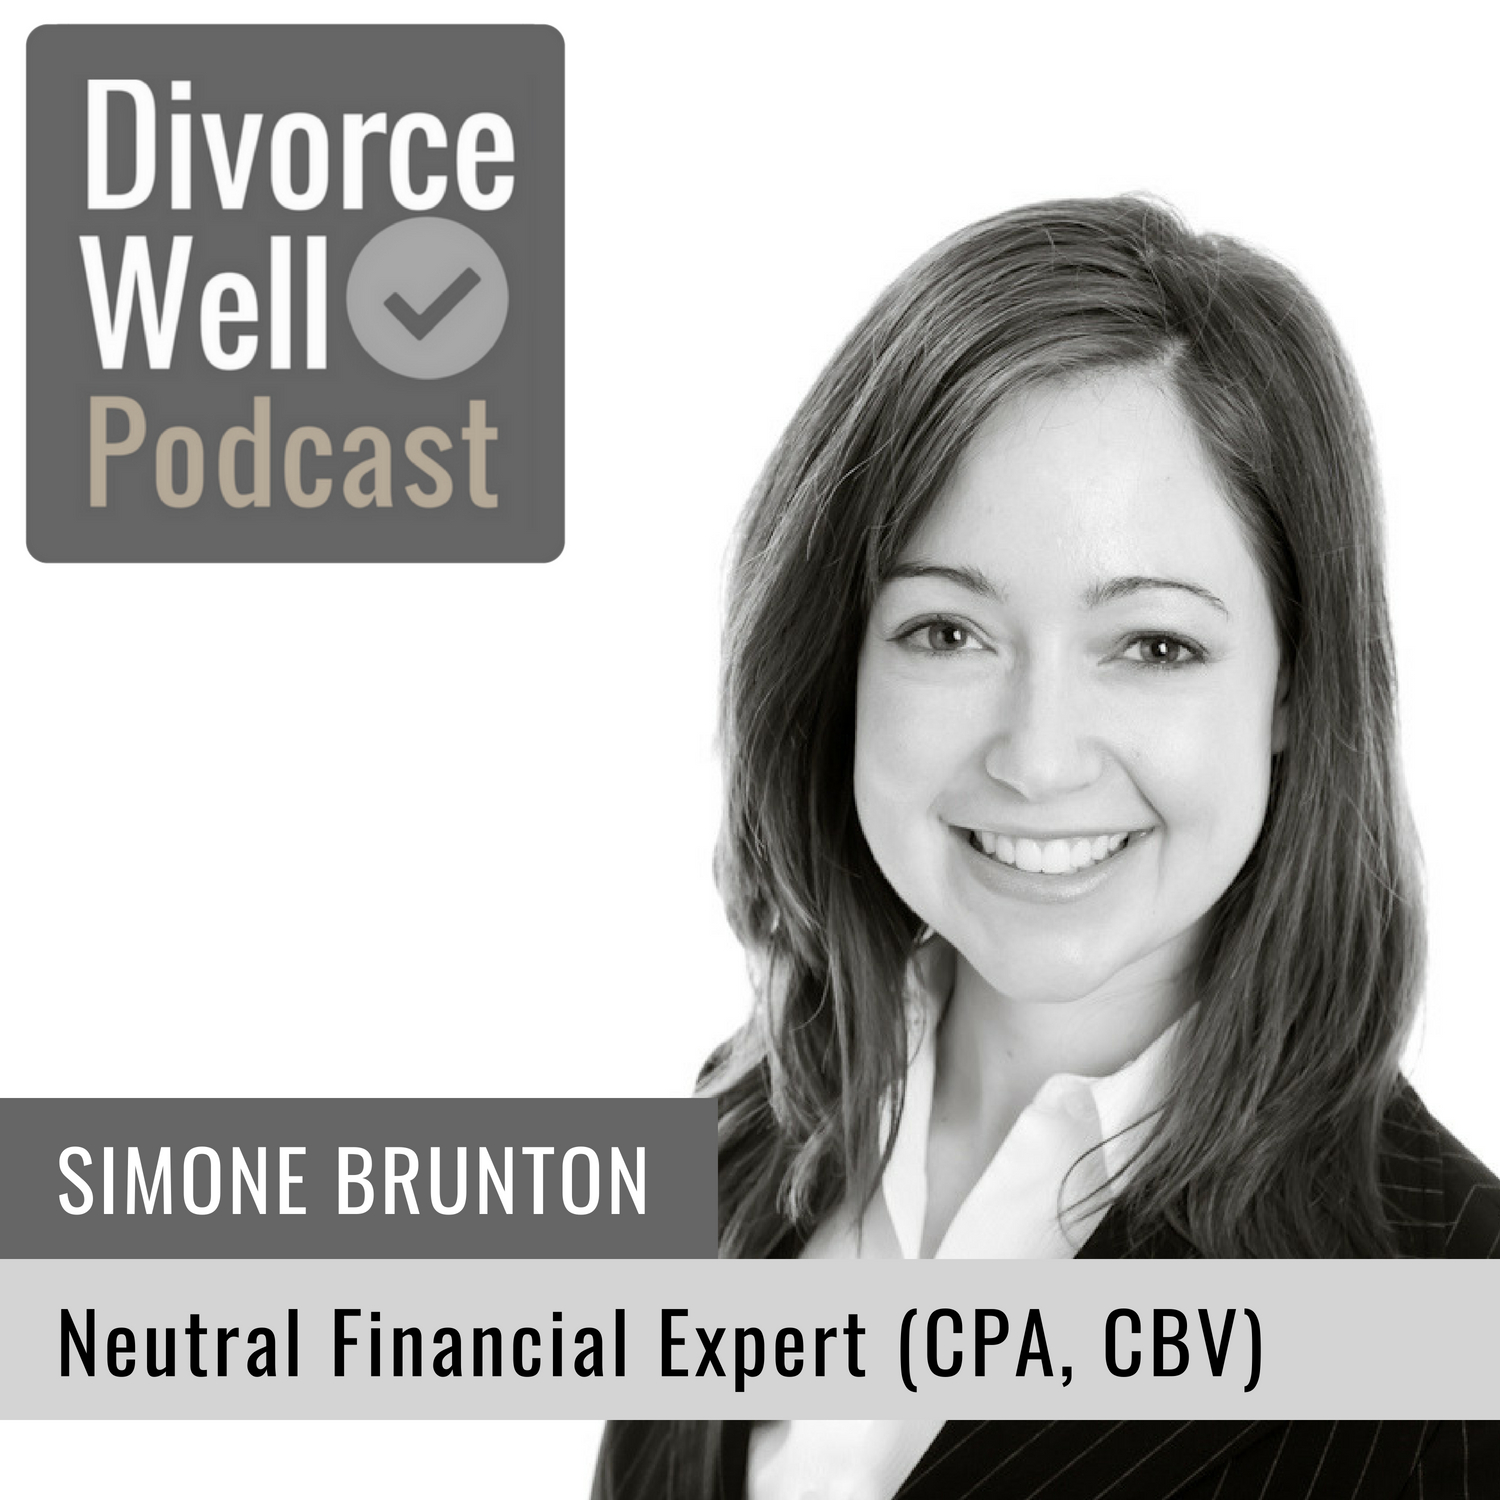 Simone Brunton on the Divorce Well Podcast about using a financial neutral in your divorce